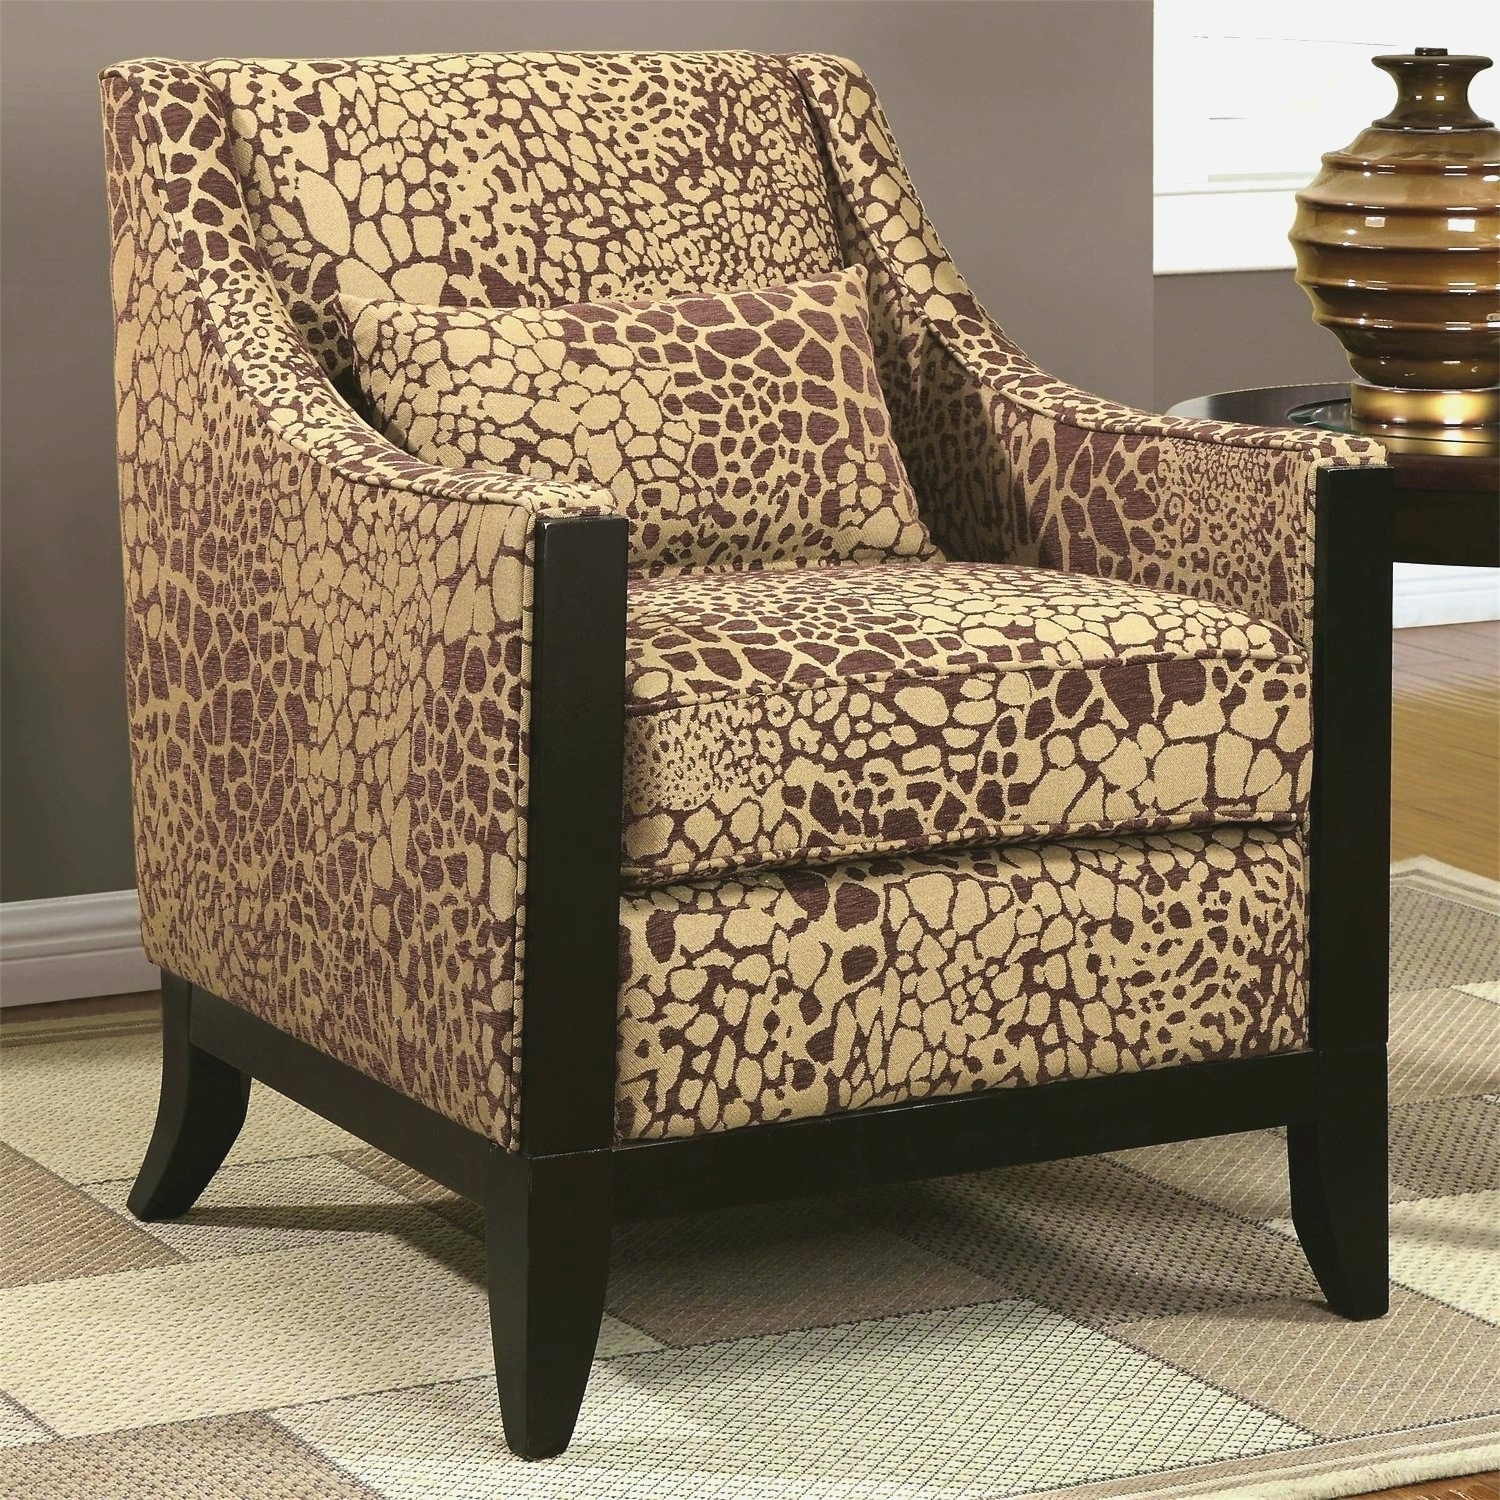 The Best Ze Print Chaise Lounge Chairs Leopard Chaise Longues on chaise sofa sleeper, chaise recliner chair, chaise furniture,